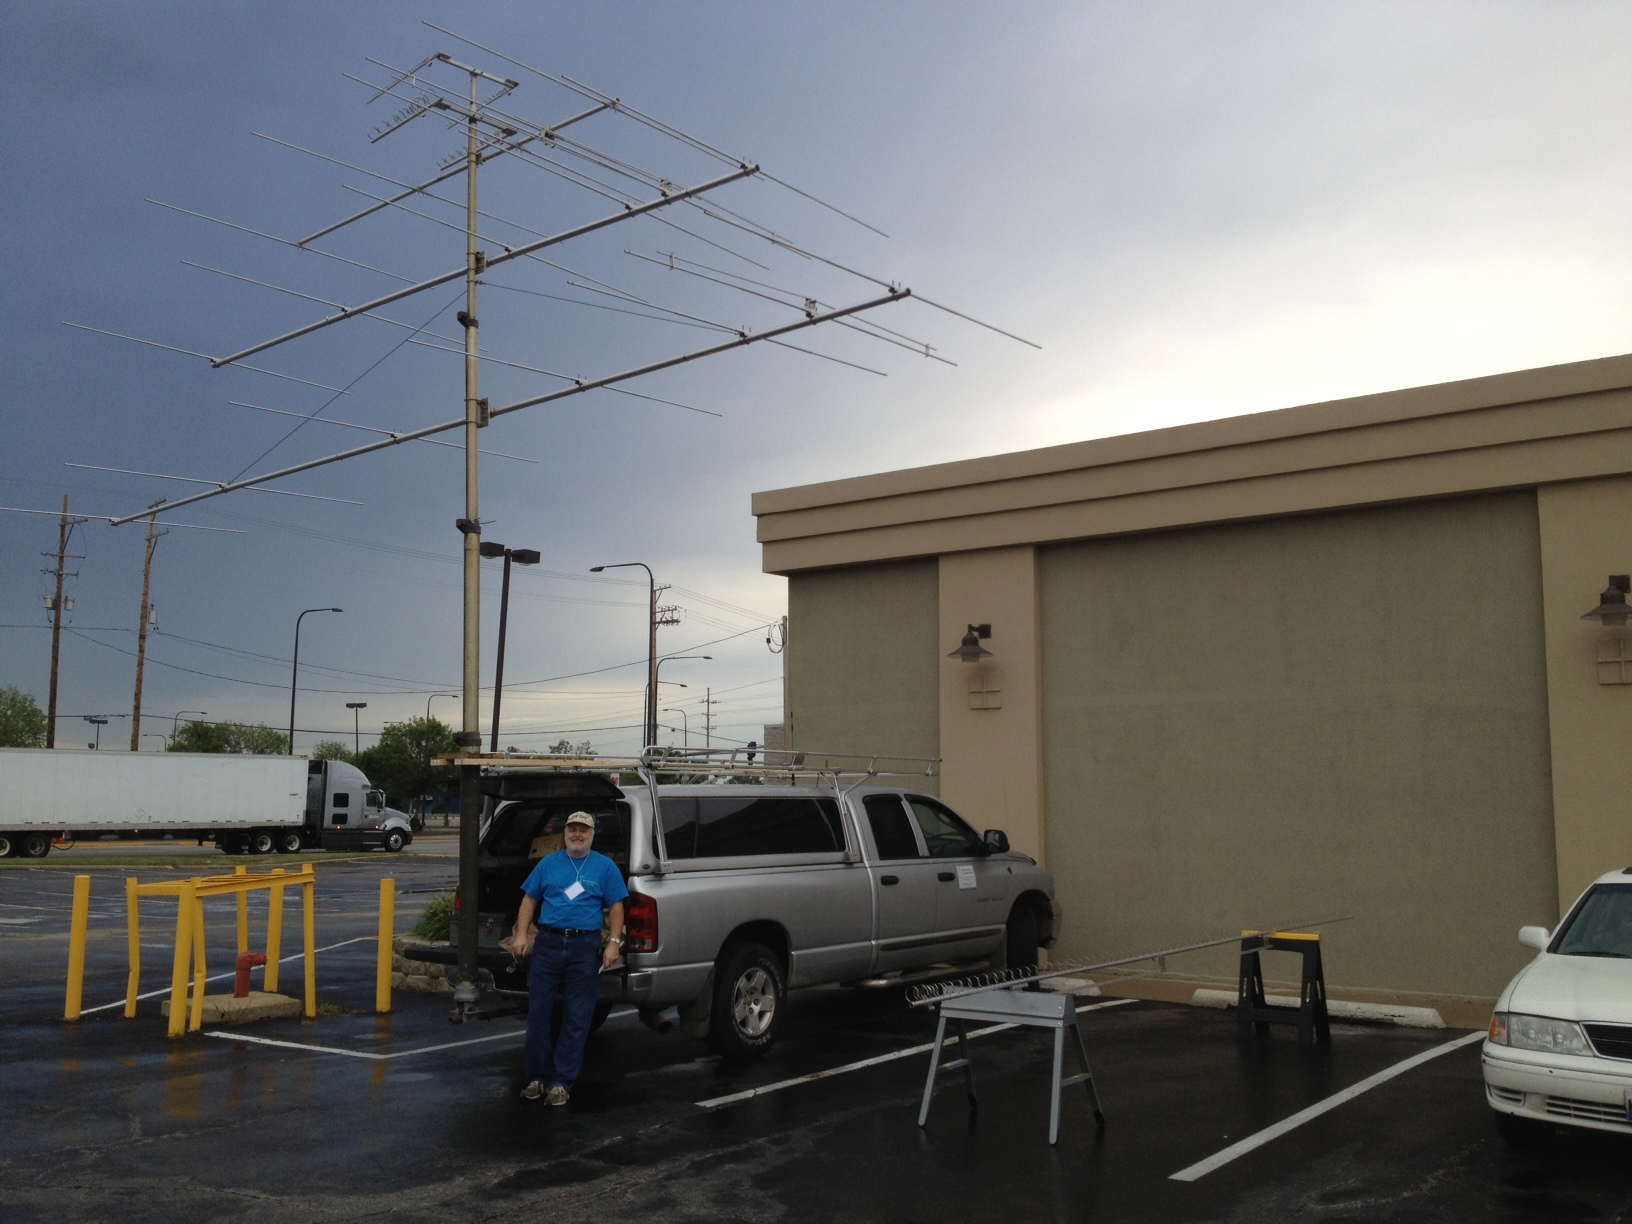 The DSEJX5-50, 6-50 and 7-50 debuted at the Central States VHF Conference in July, 2013